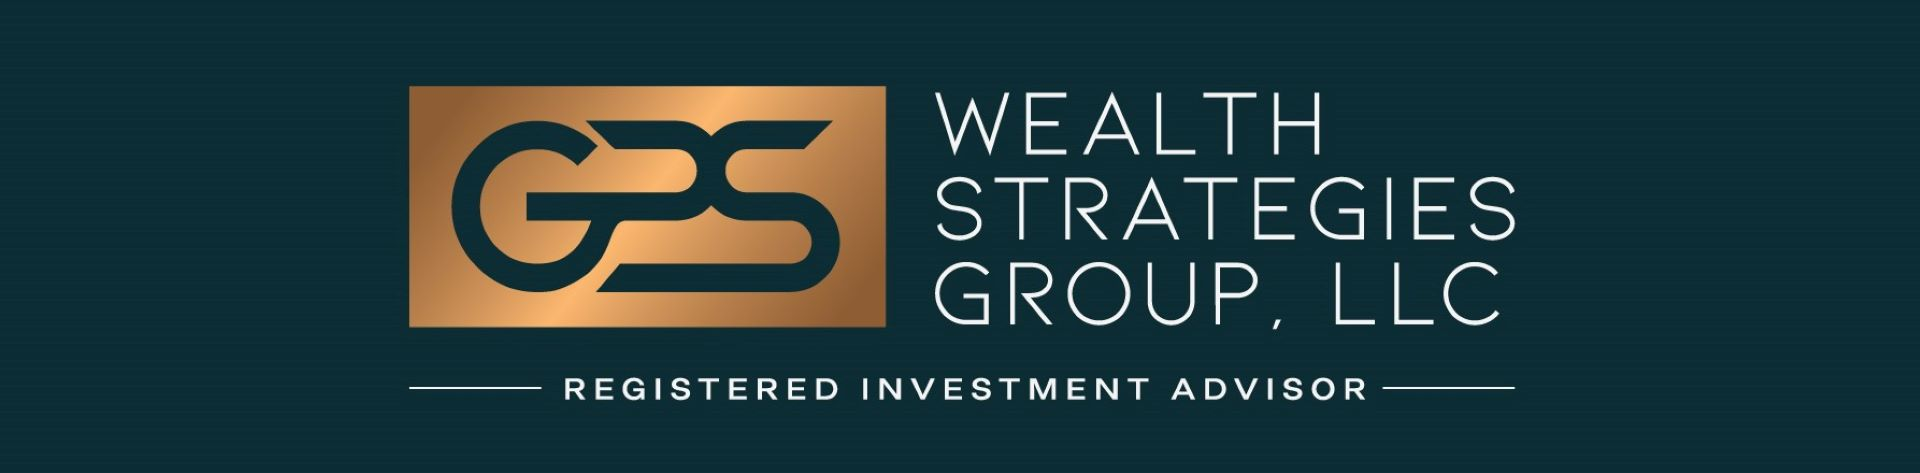 GPS Wealth Strategies Group, LLC